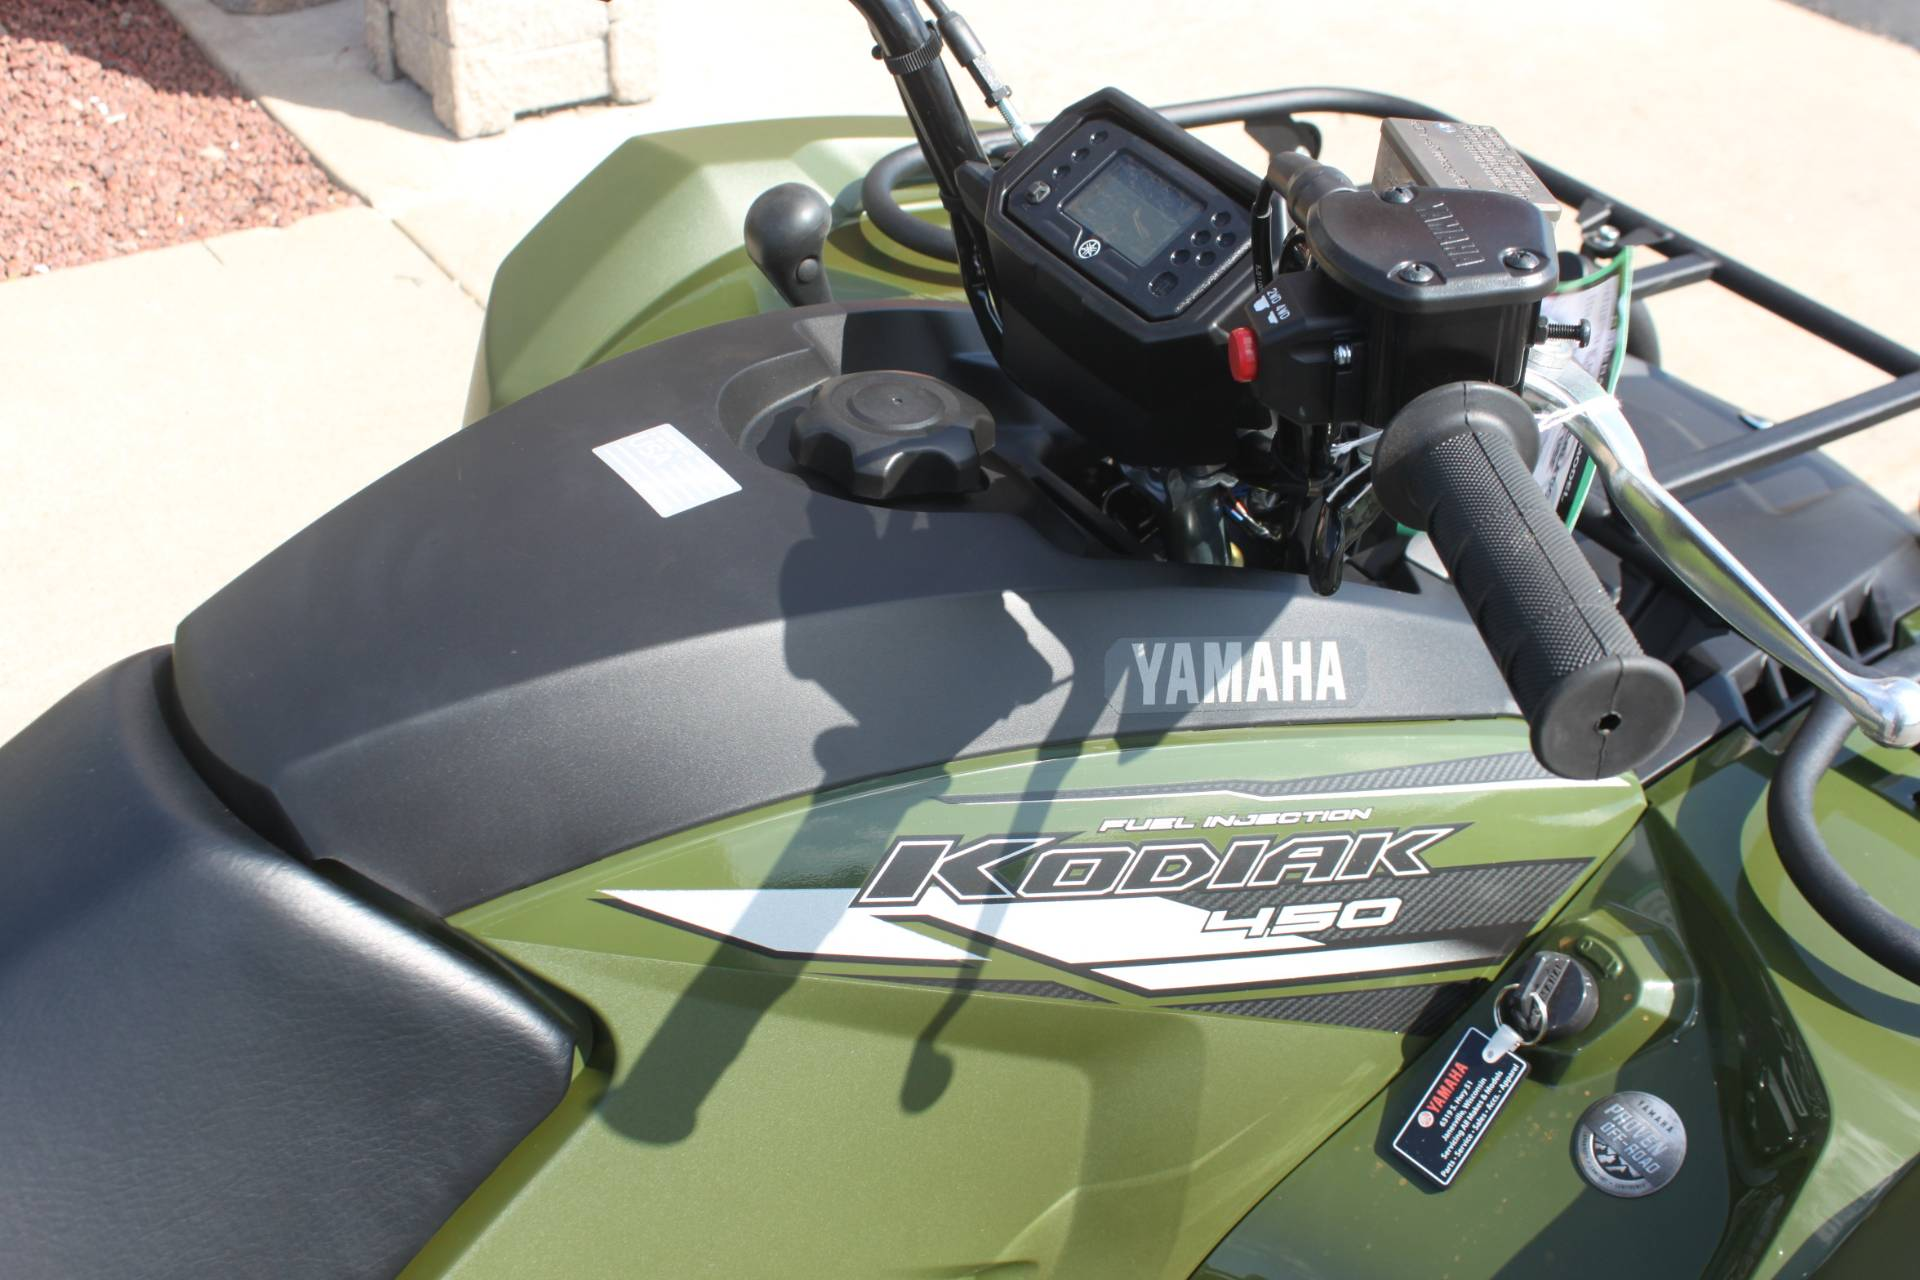 2020 Yamaha Kodiak 450 in Janesville, Wisconsin - Photo 9